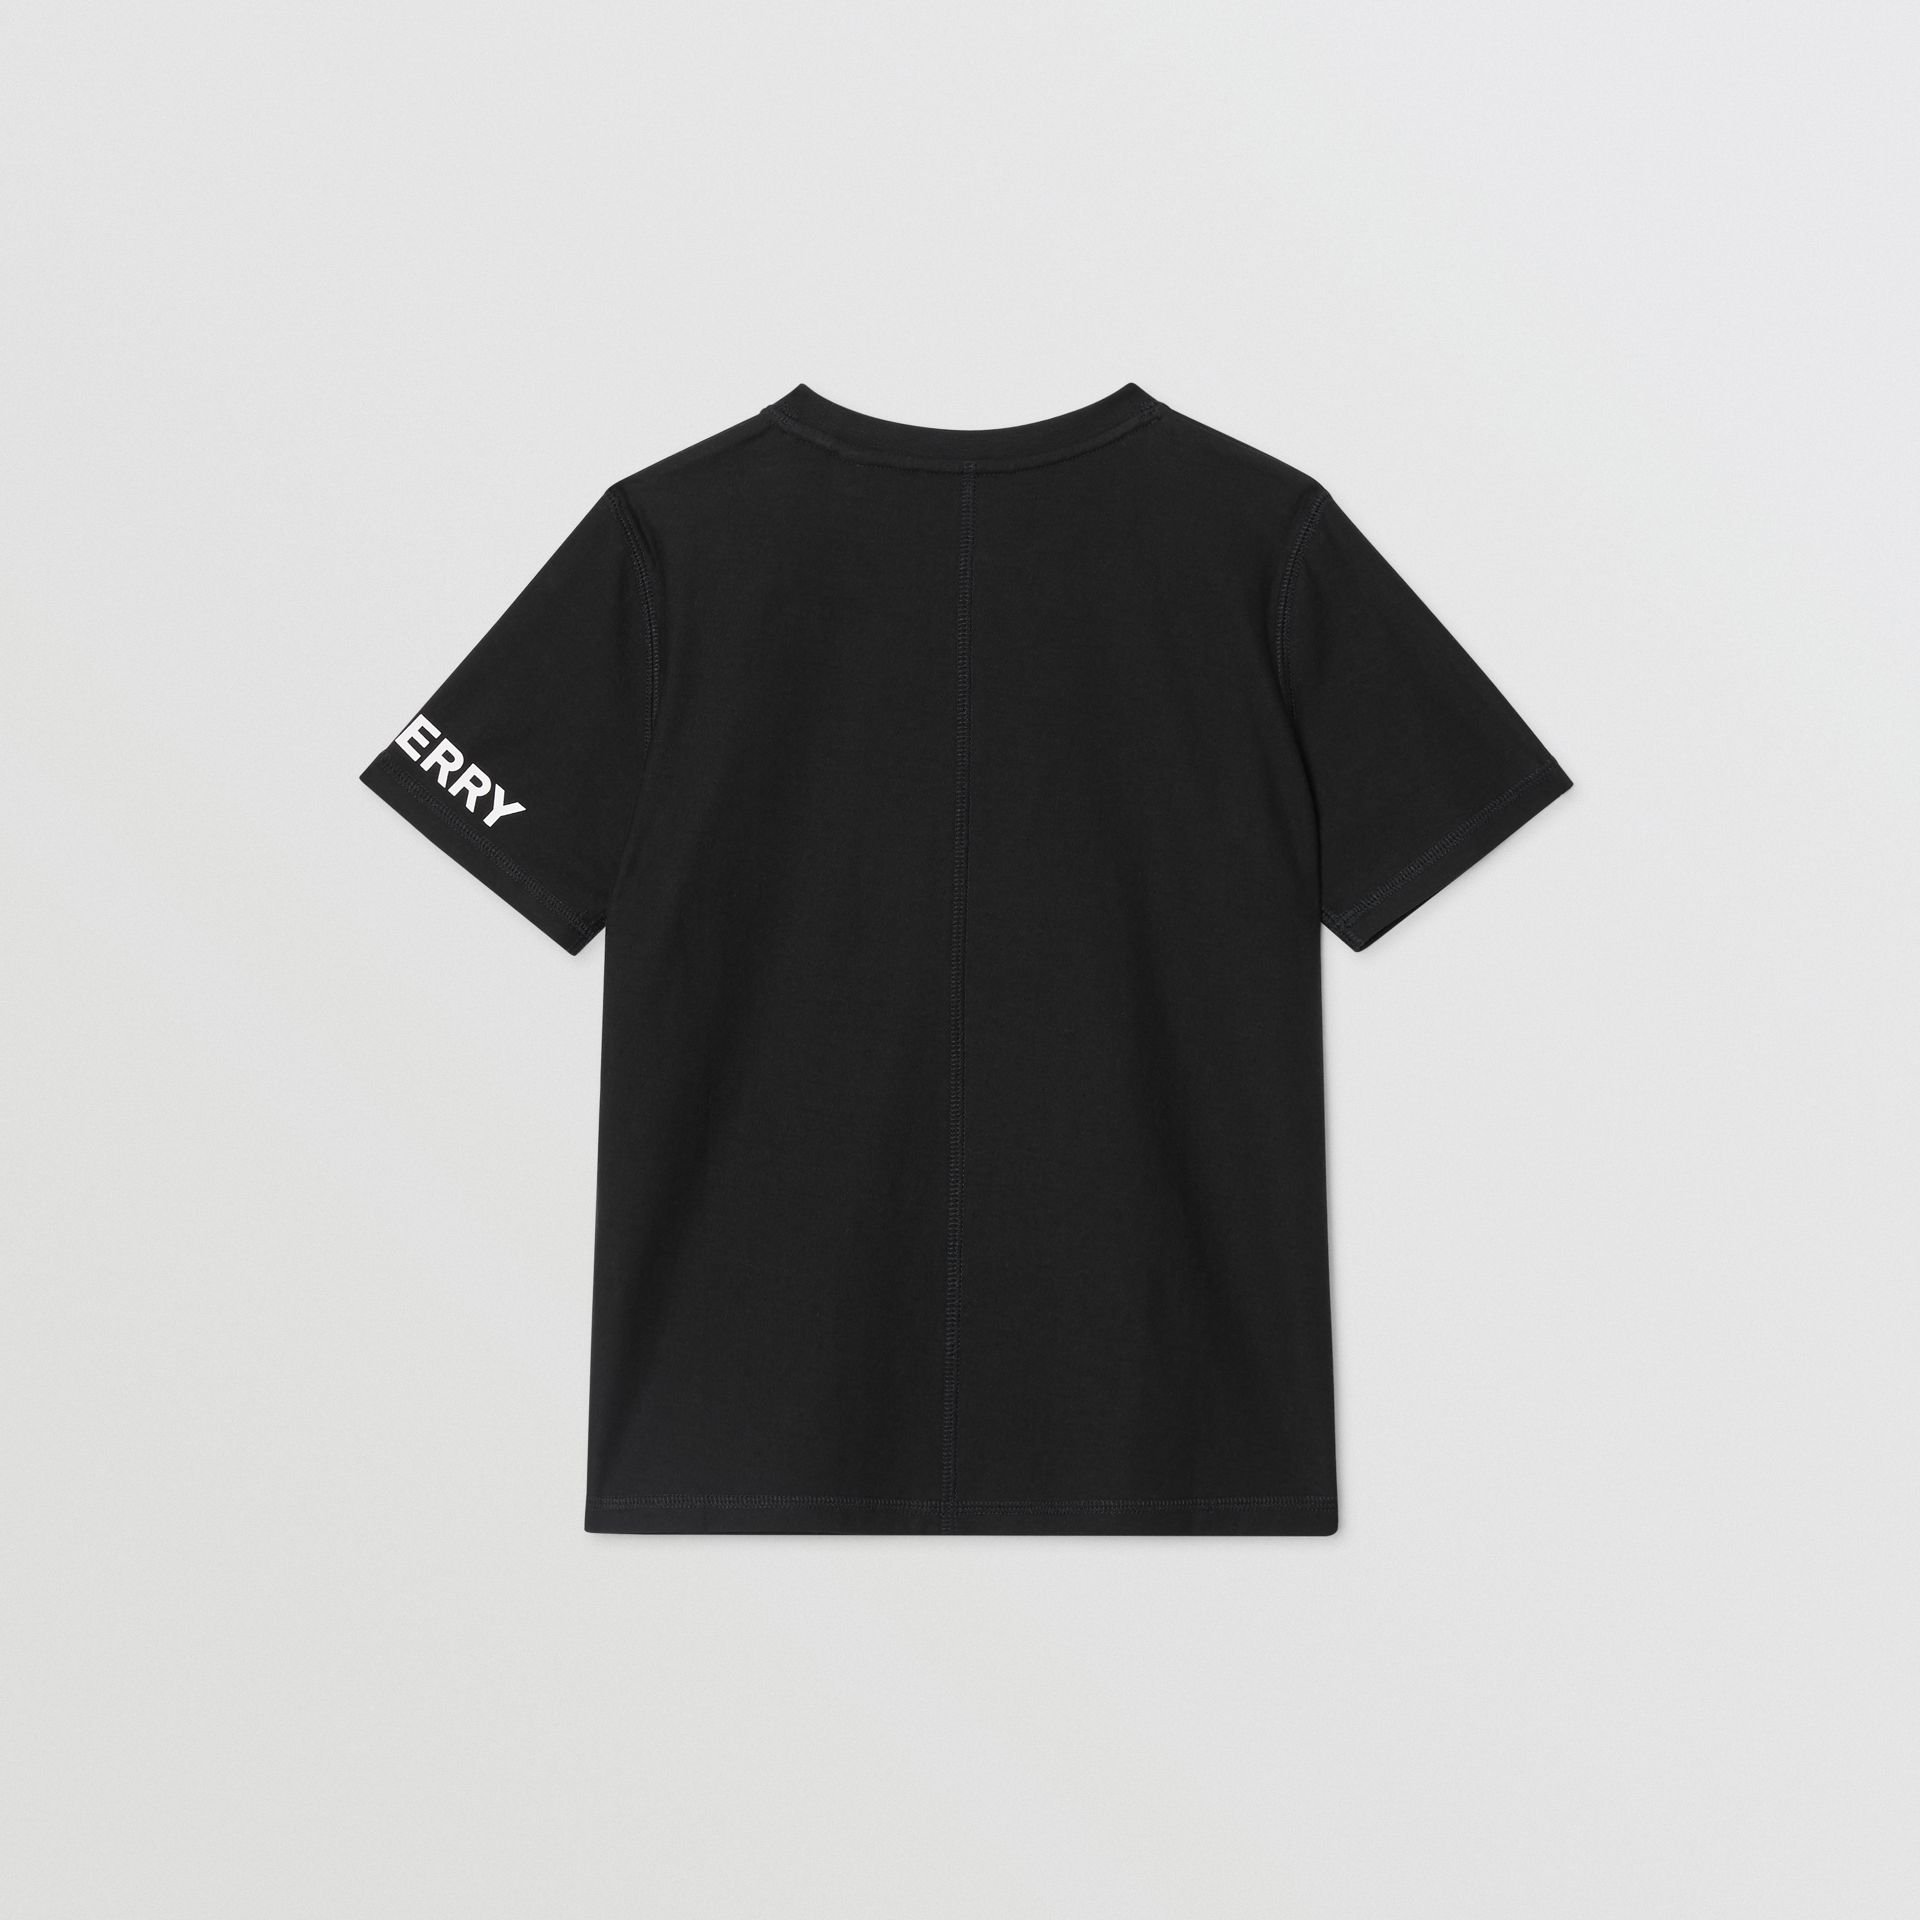 Logo Graphic Cotton T-shirt in Black | Burberry - gallery image 3